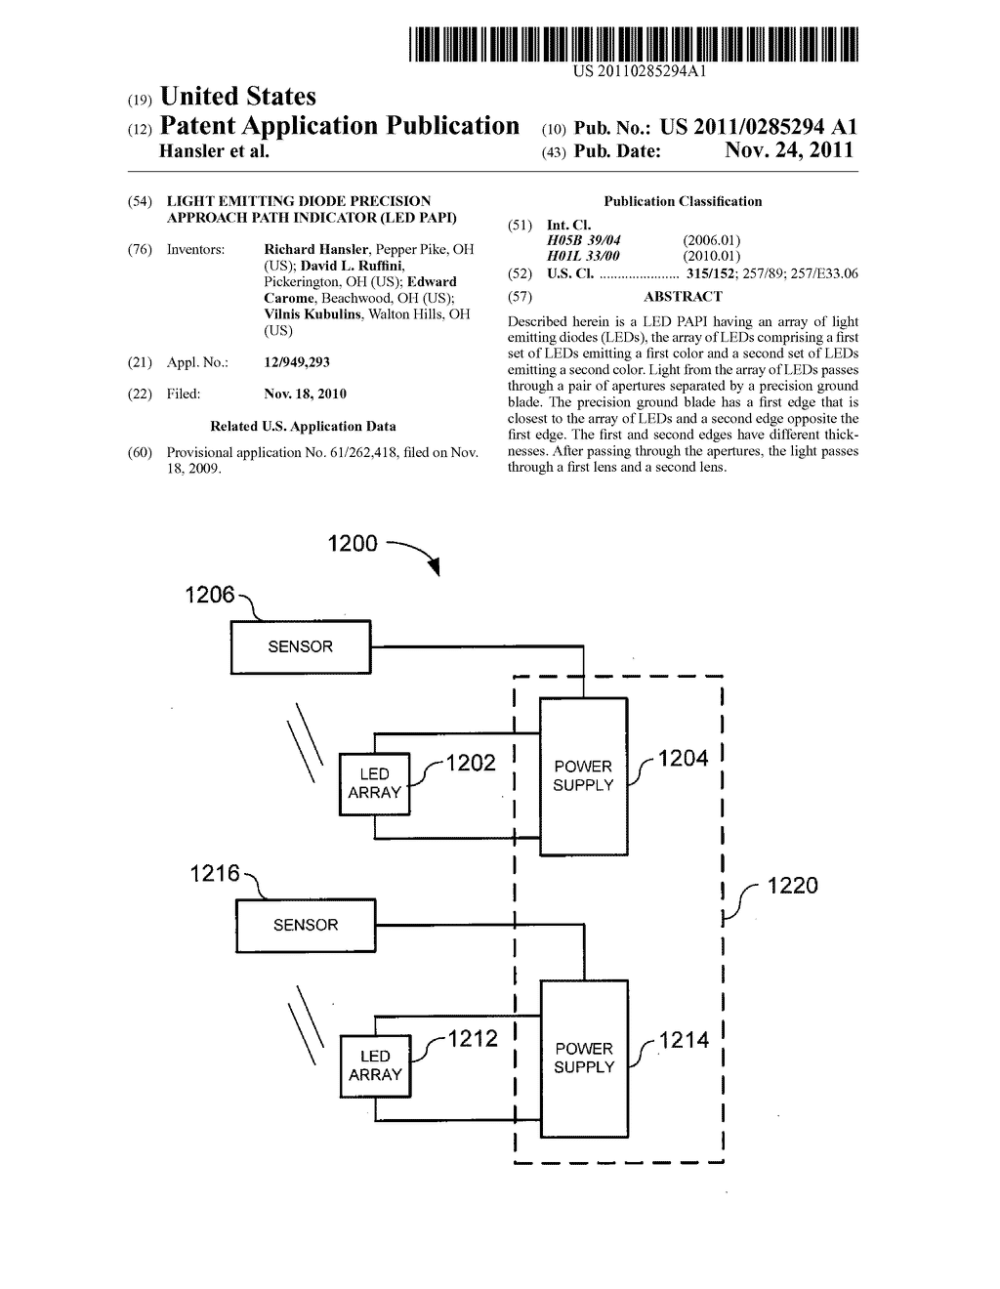 medium resolution of light emitting diode precision approach path indicator led papi diagram schematic and image 01